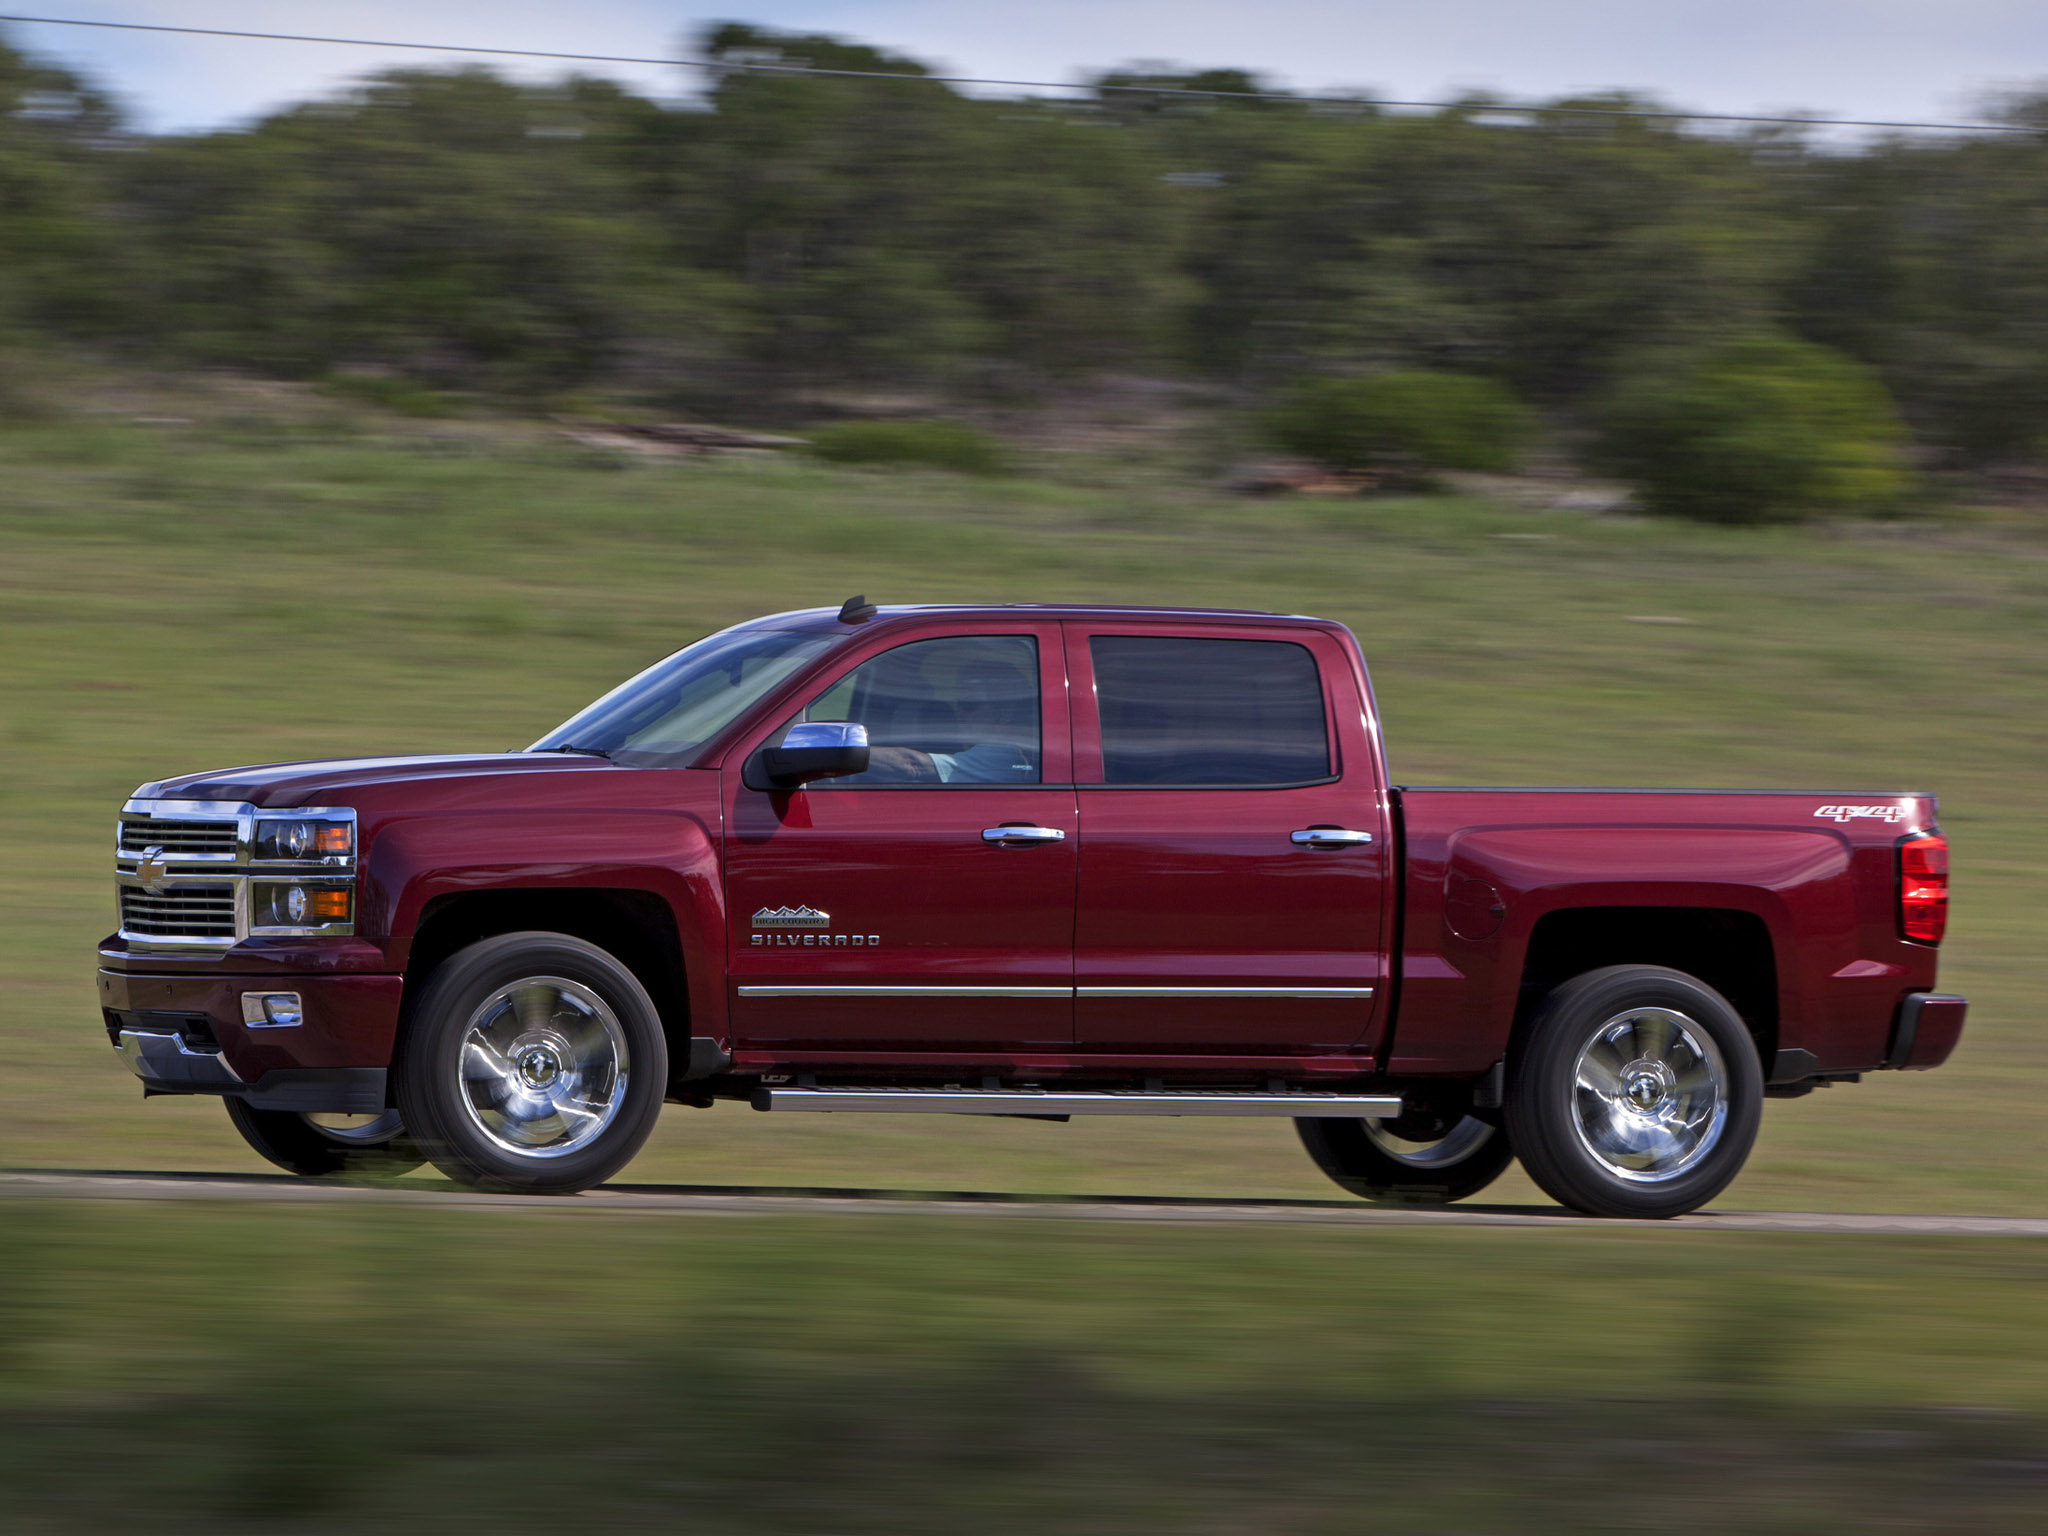 Country Truck Wallpaper 94637